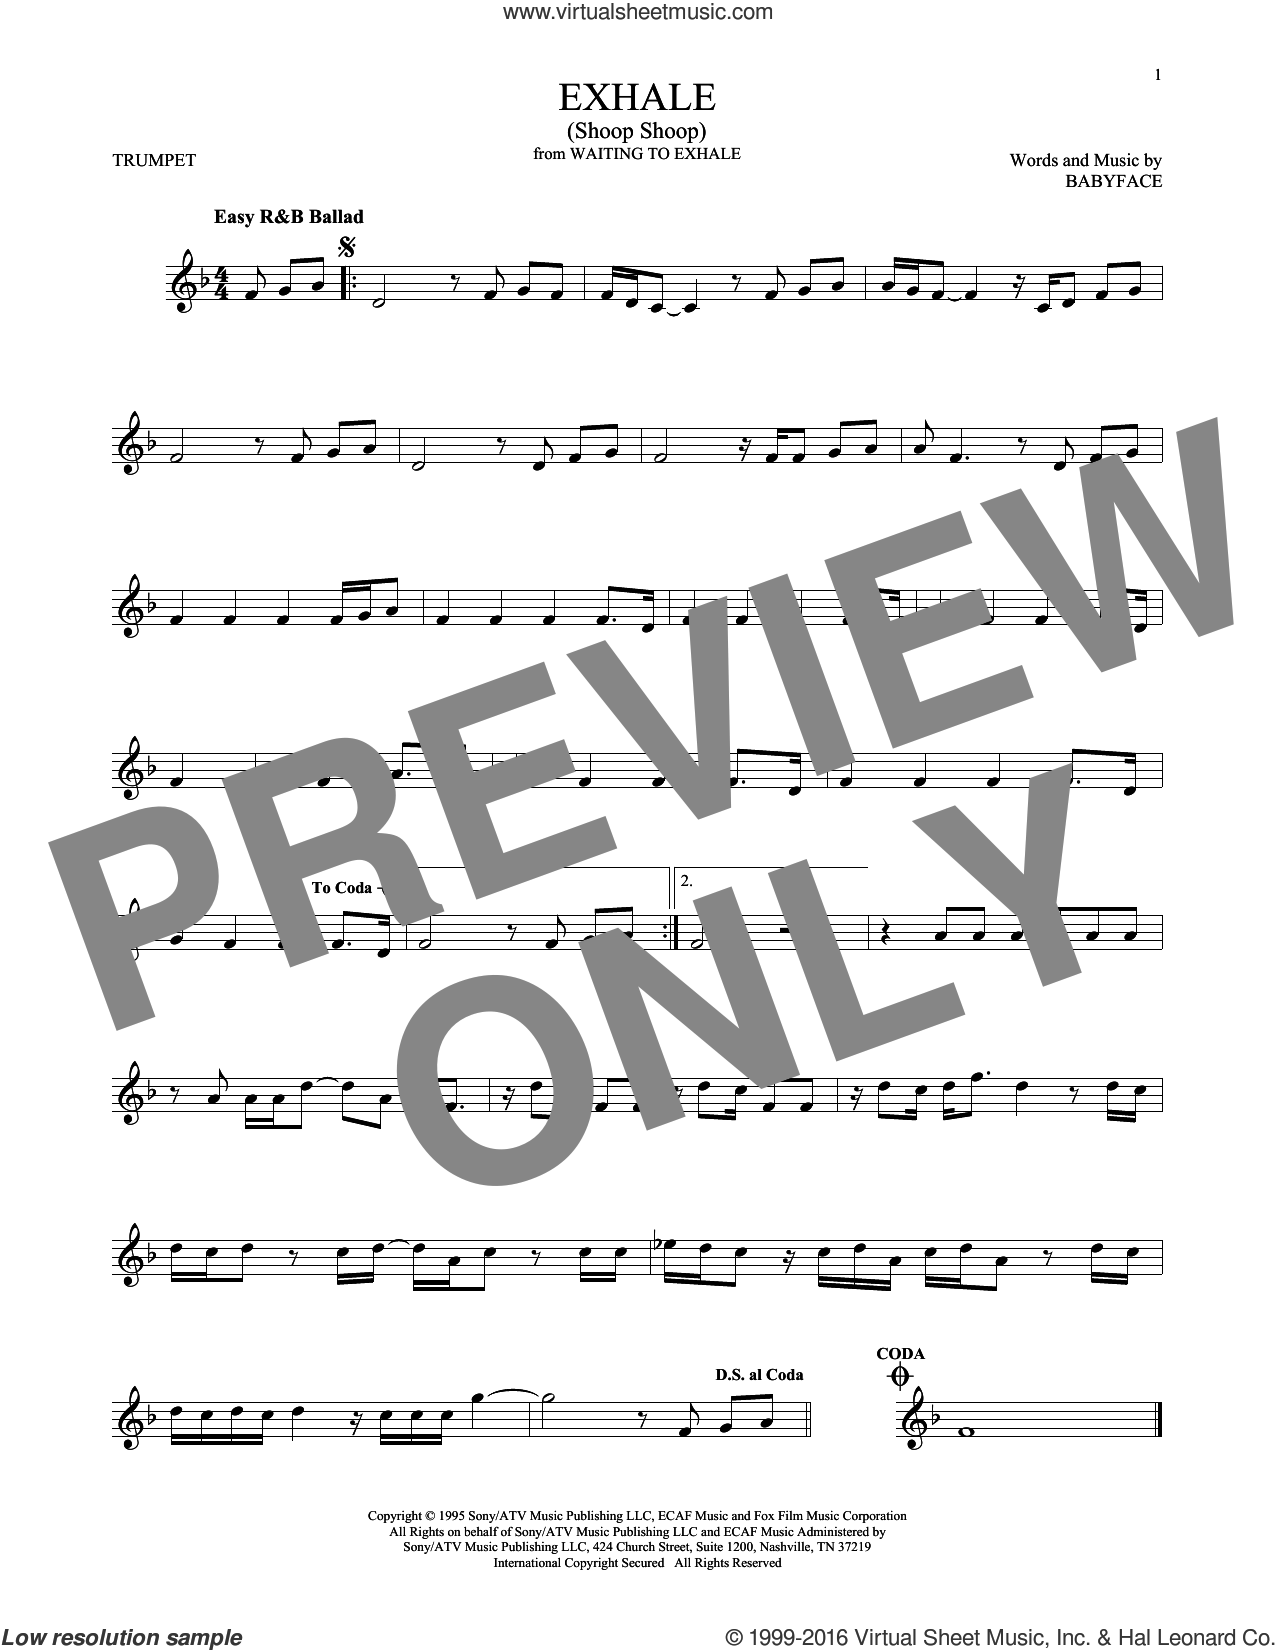 Exhale (Shoop Shoop) sheet music for trumpet solo by Whitney Houston and Babyface, intermediate skill level